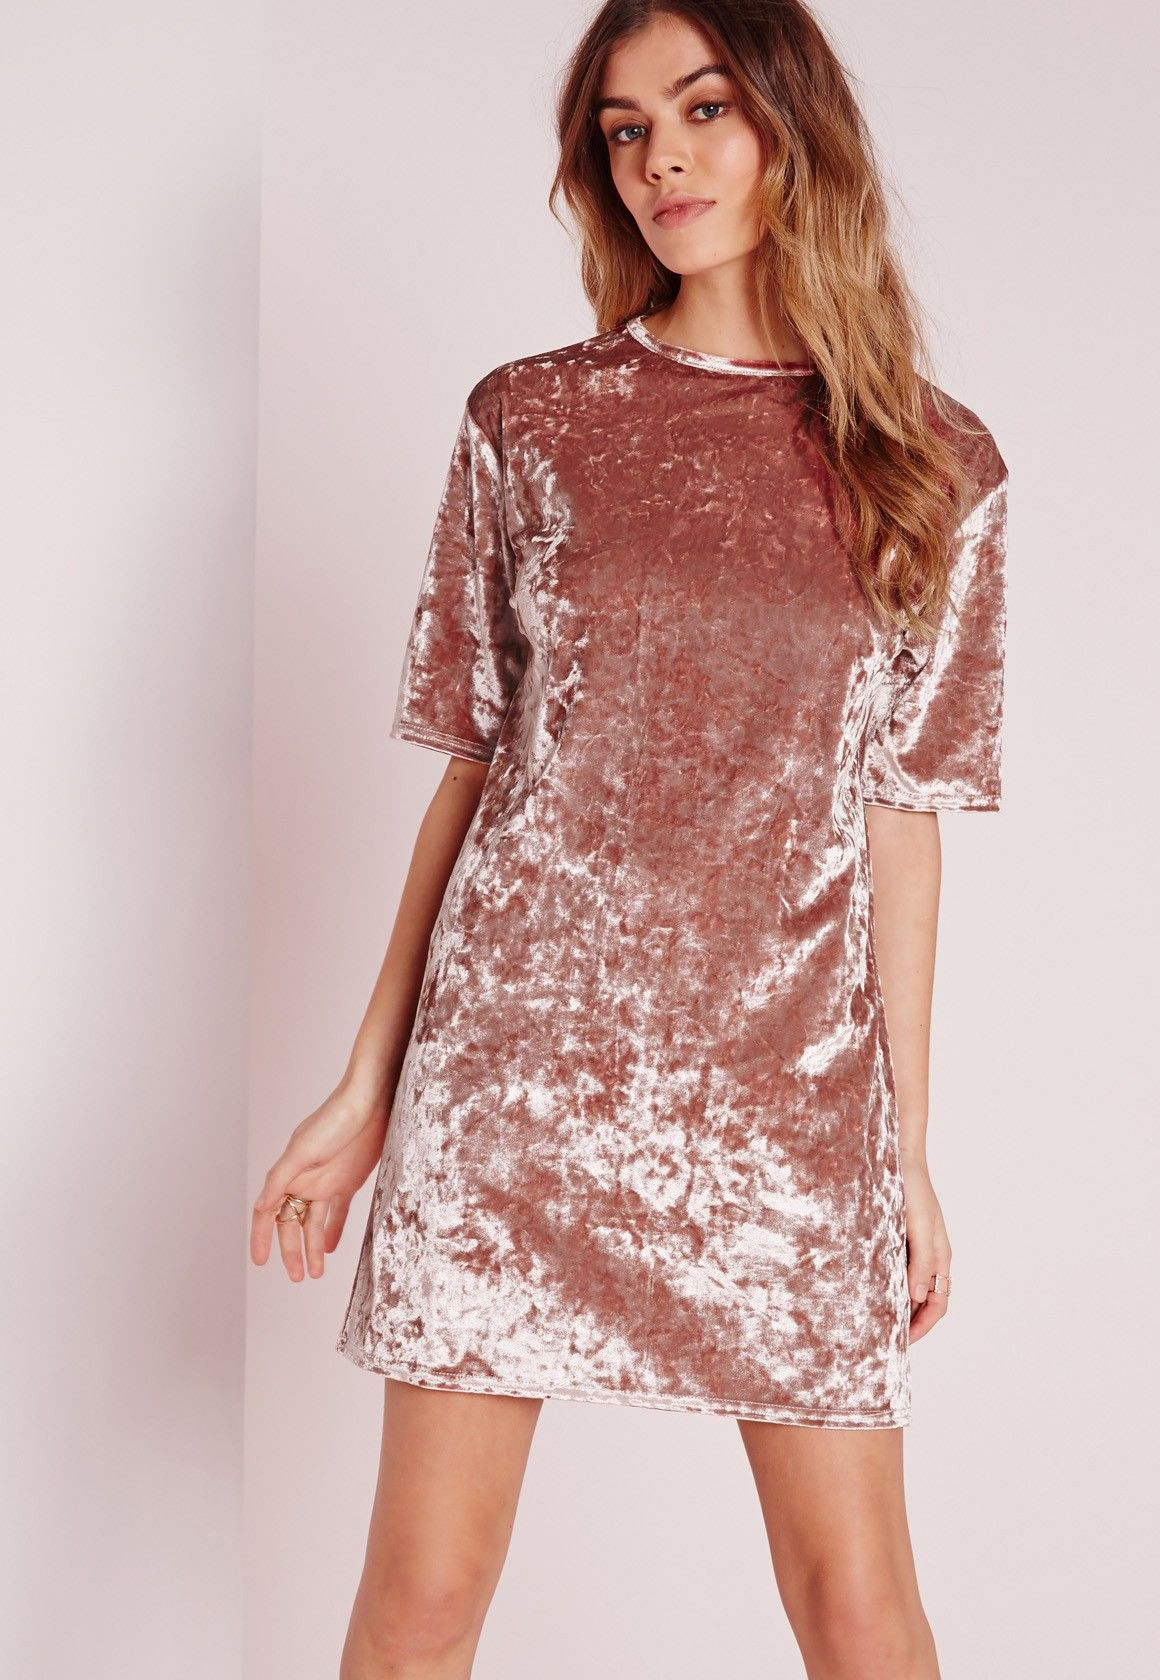 Missguided - Oversized Crushed Velvet T-Shirt Dress Pink  2bf1793190905